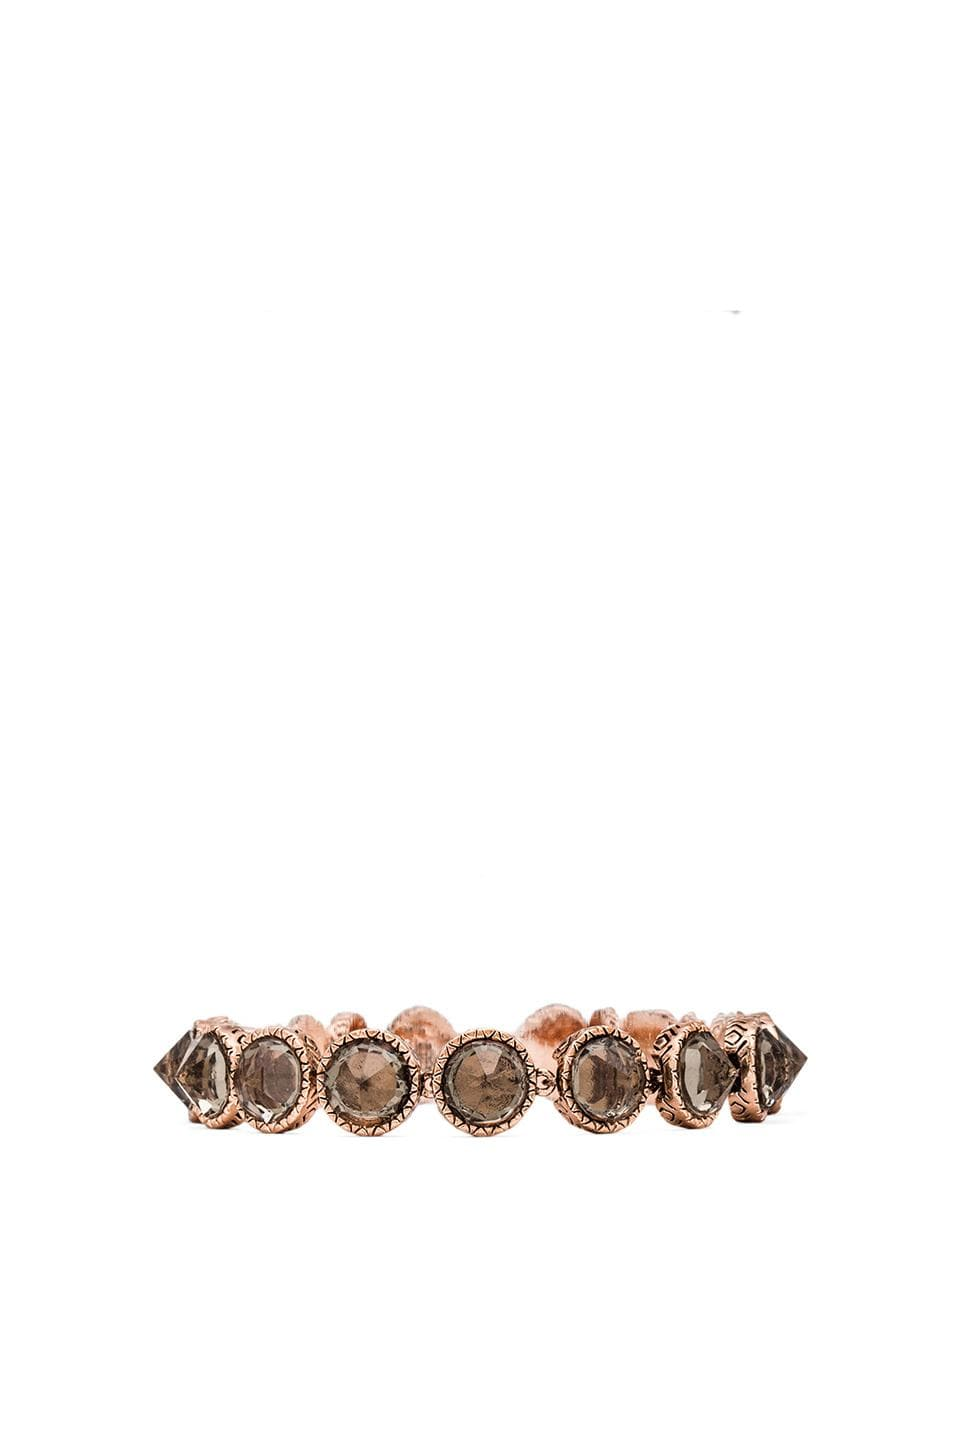 House of Harlow 1960 House of Harlow Scry Stone Tennis Bracelet in Rose Gold